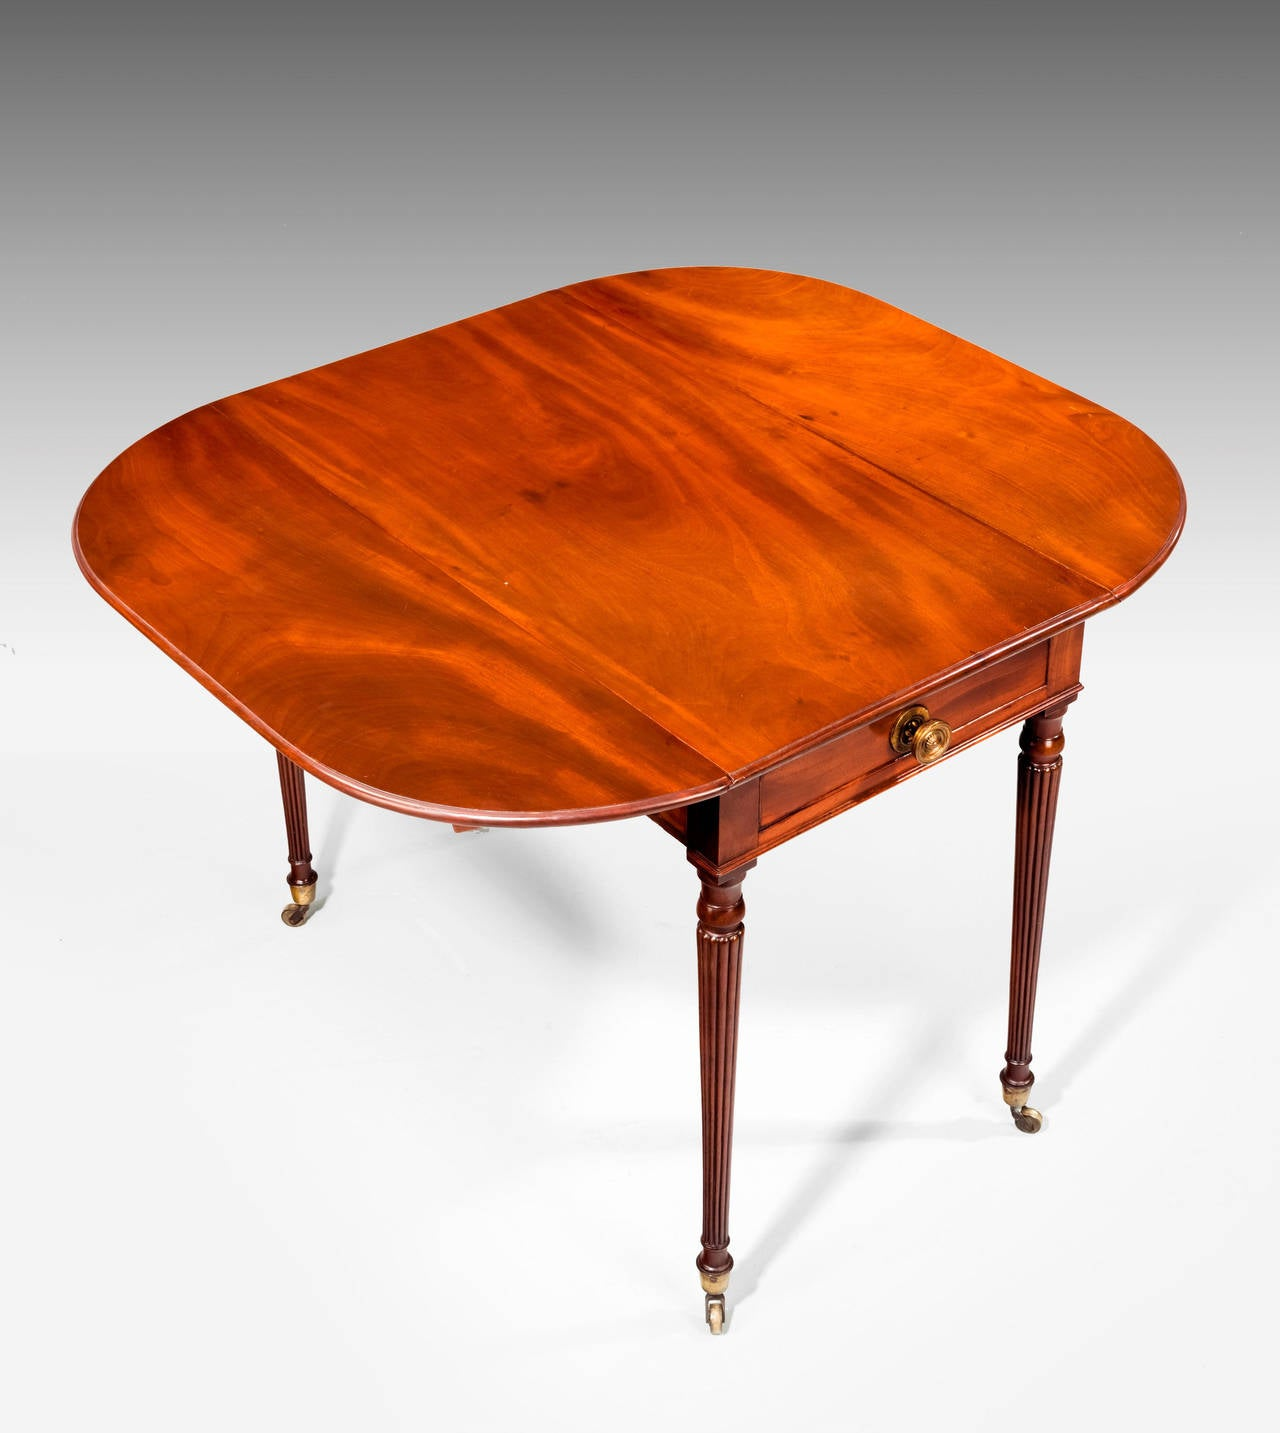 Regency Period Mahogany Pembroke Table For Sale At 1stdibs